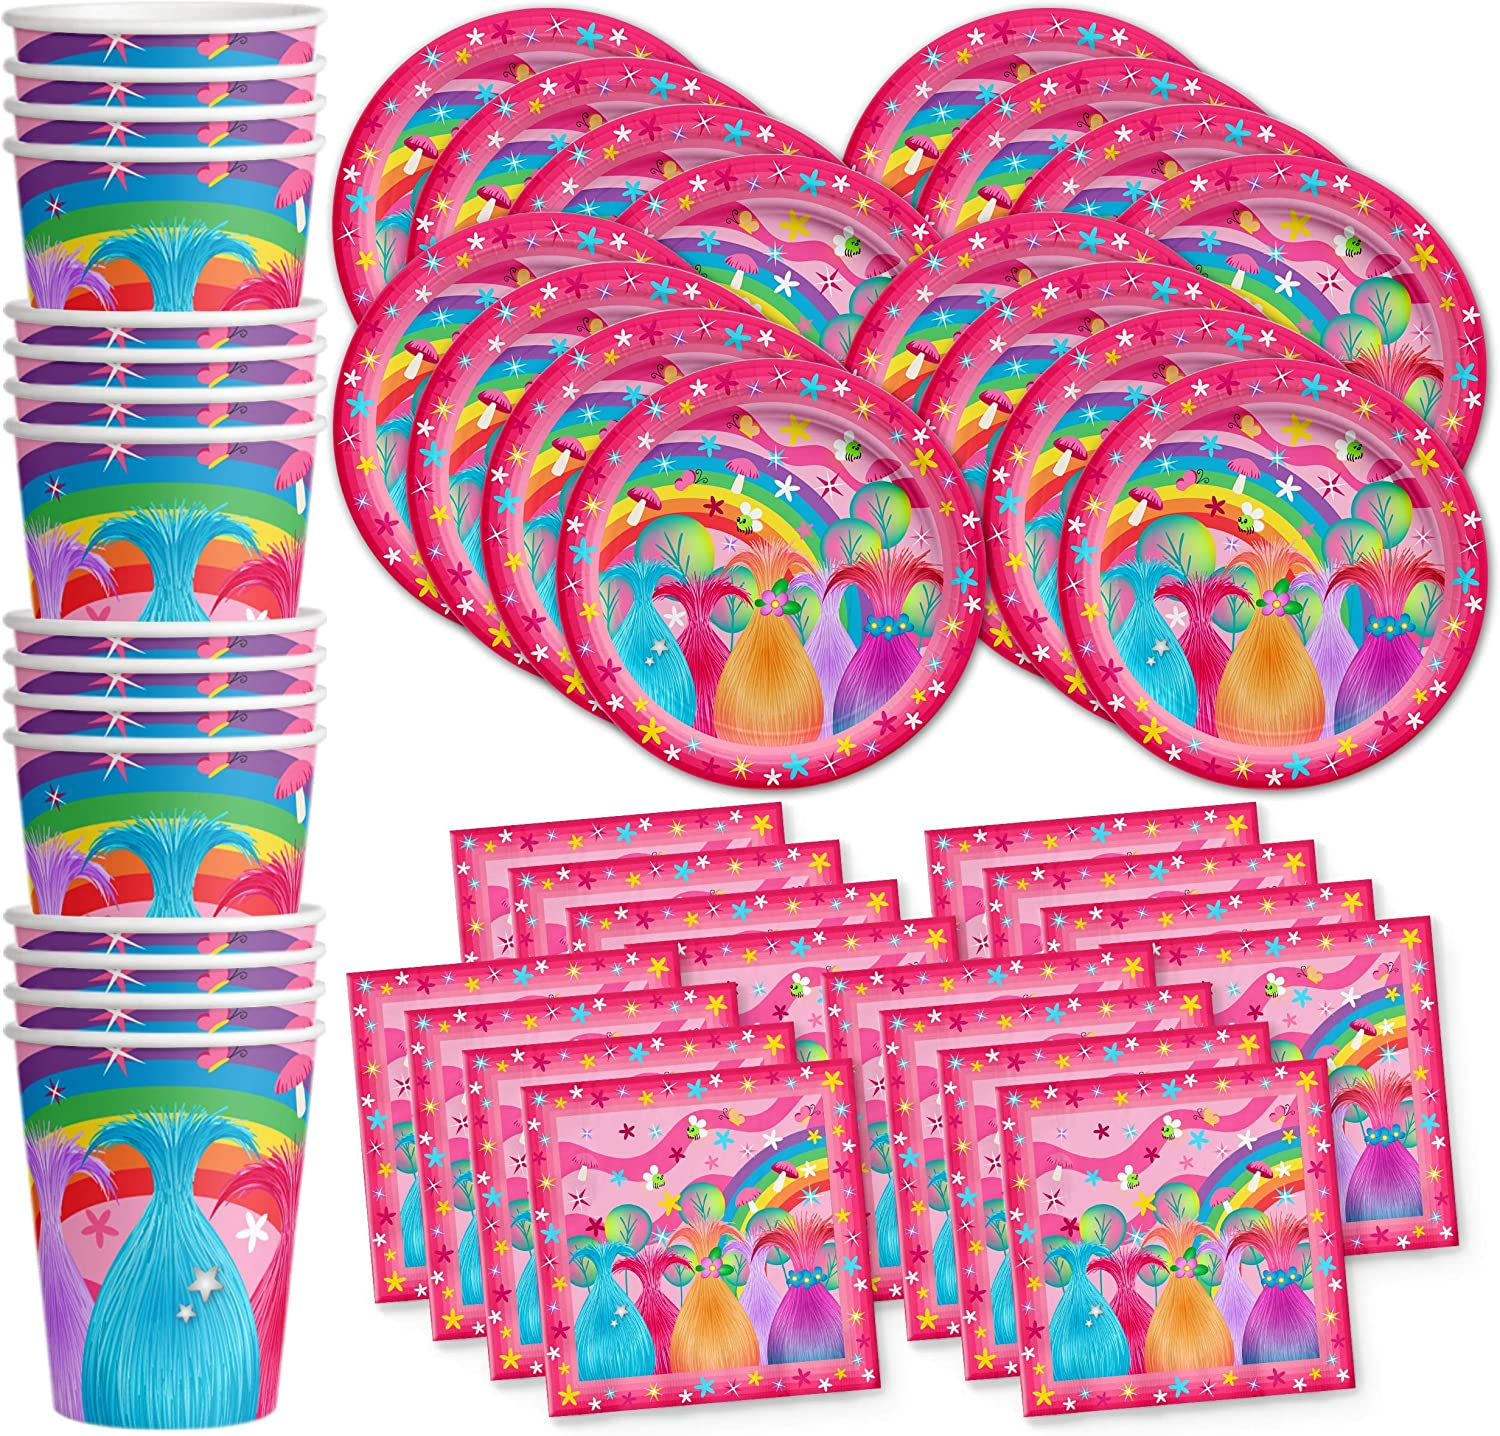 Trolls Party Birthday Party Supplies Set Plates Napkins Cups Tableware Kit for 16